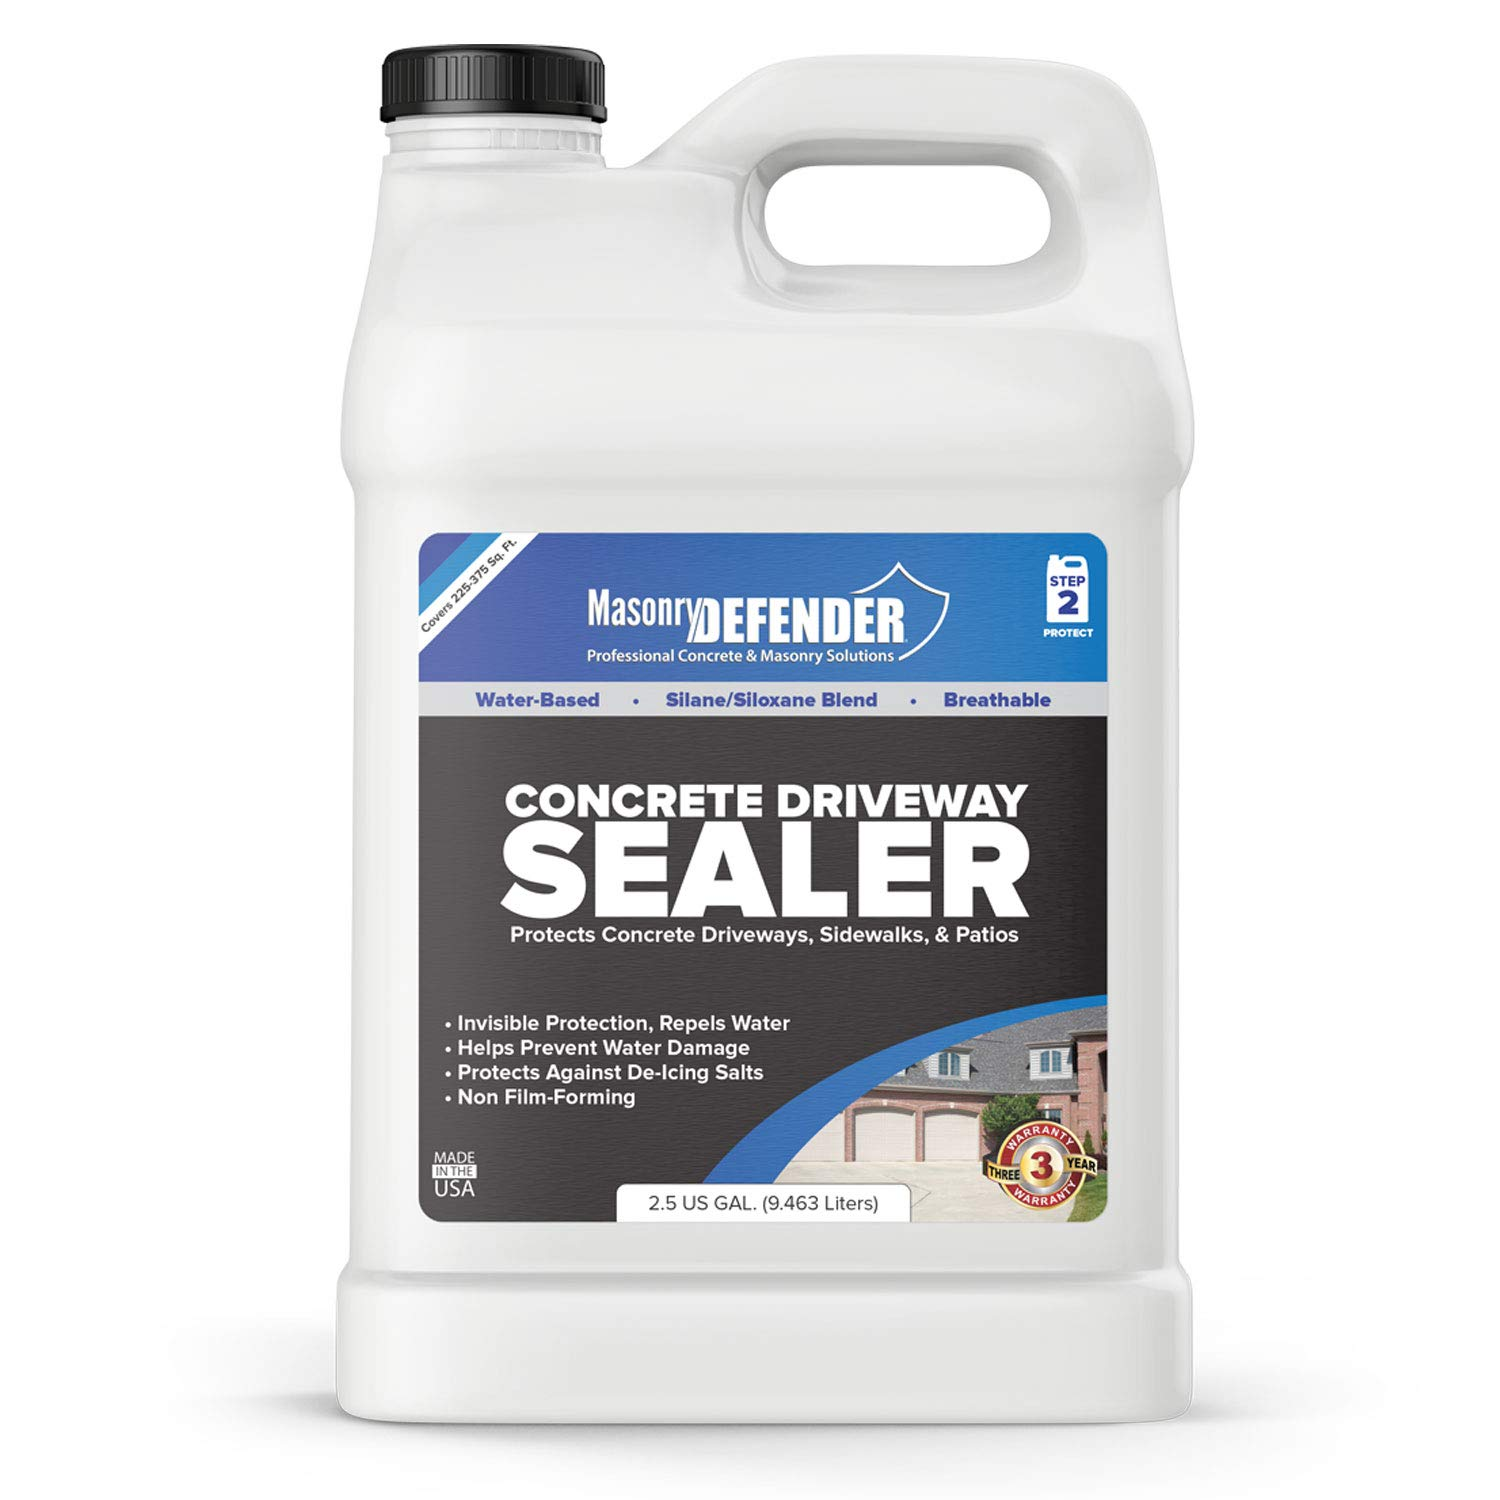 MasonryDefender 2.5 Gallon Penetrating Concrete Sealer for Driveways, Patios, Sidewalks - Clear Water-Based Silane Siloxane Sealer Water Repellent